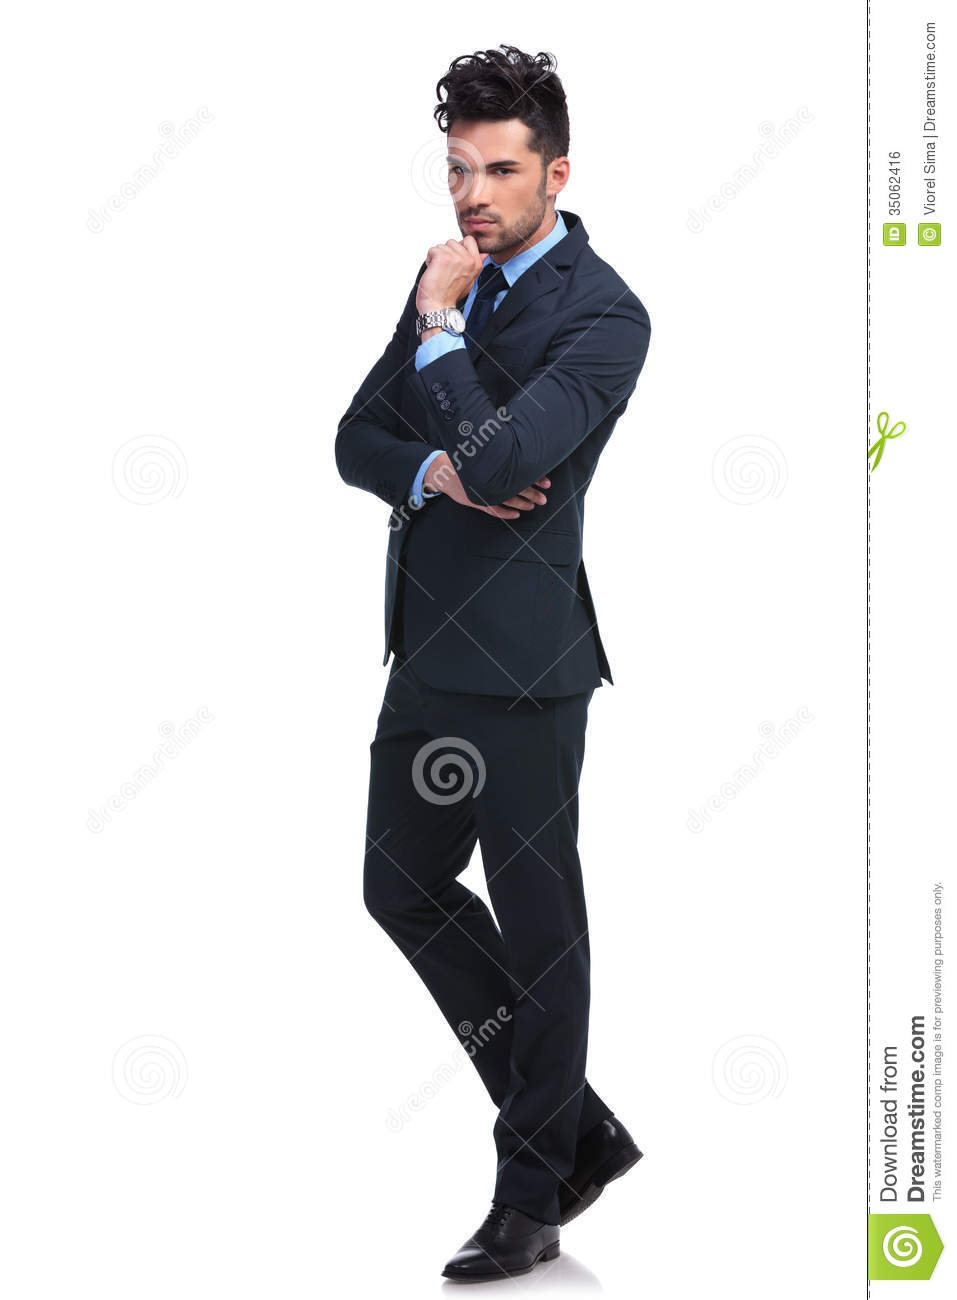 Full body picture of a serious pensive business man